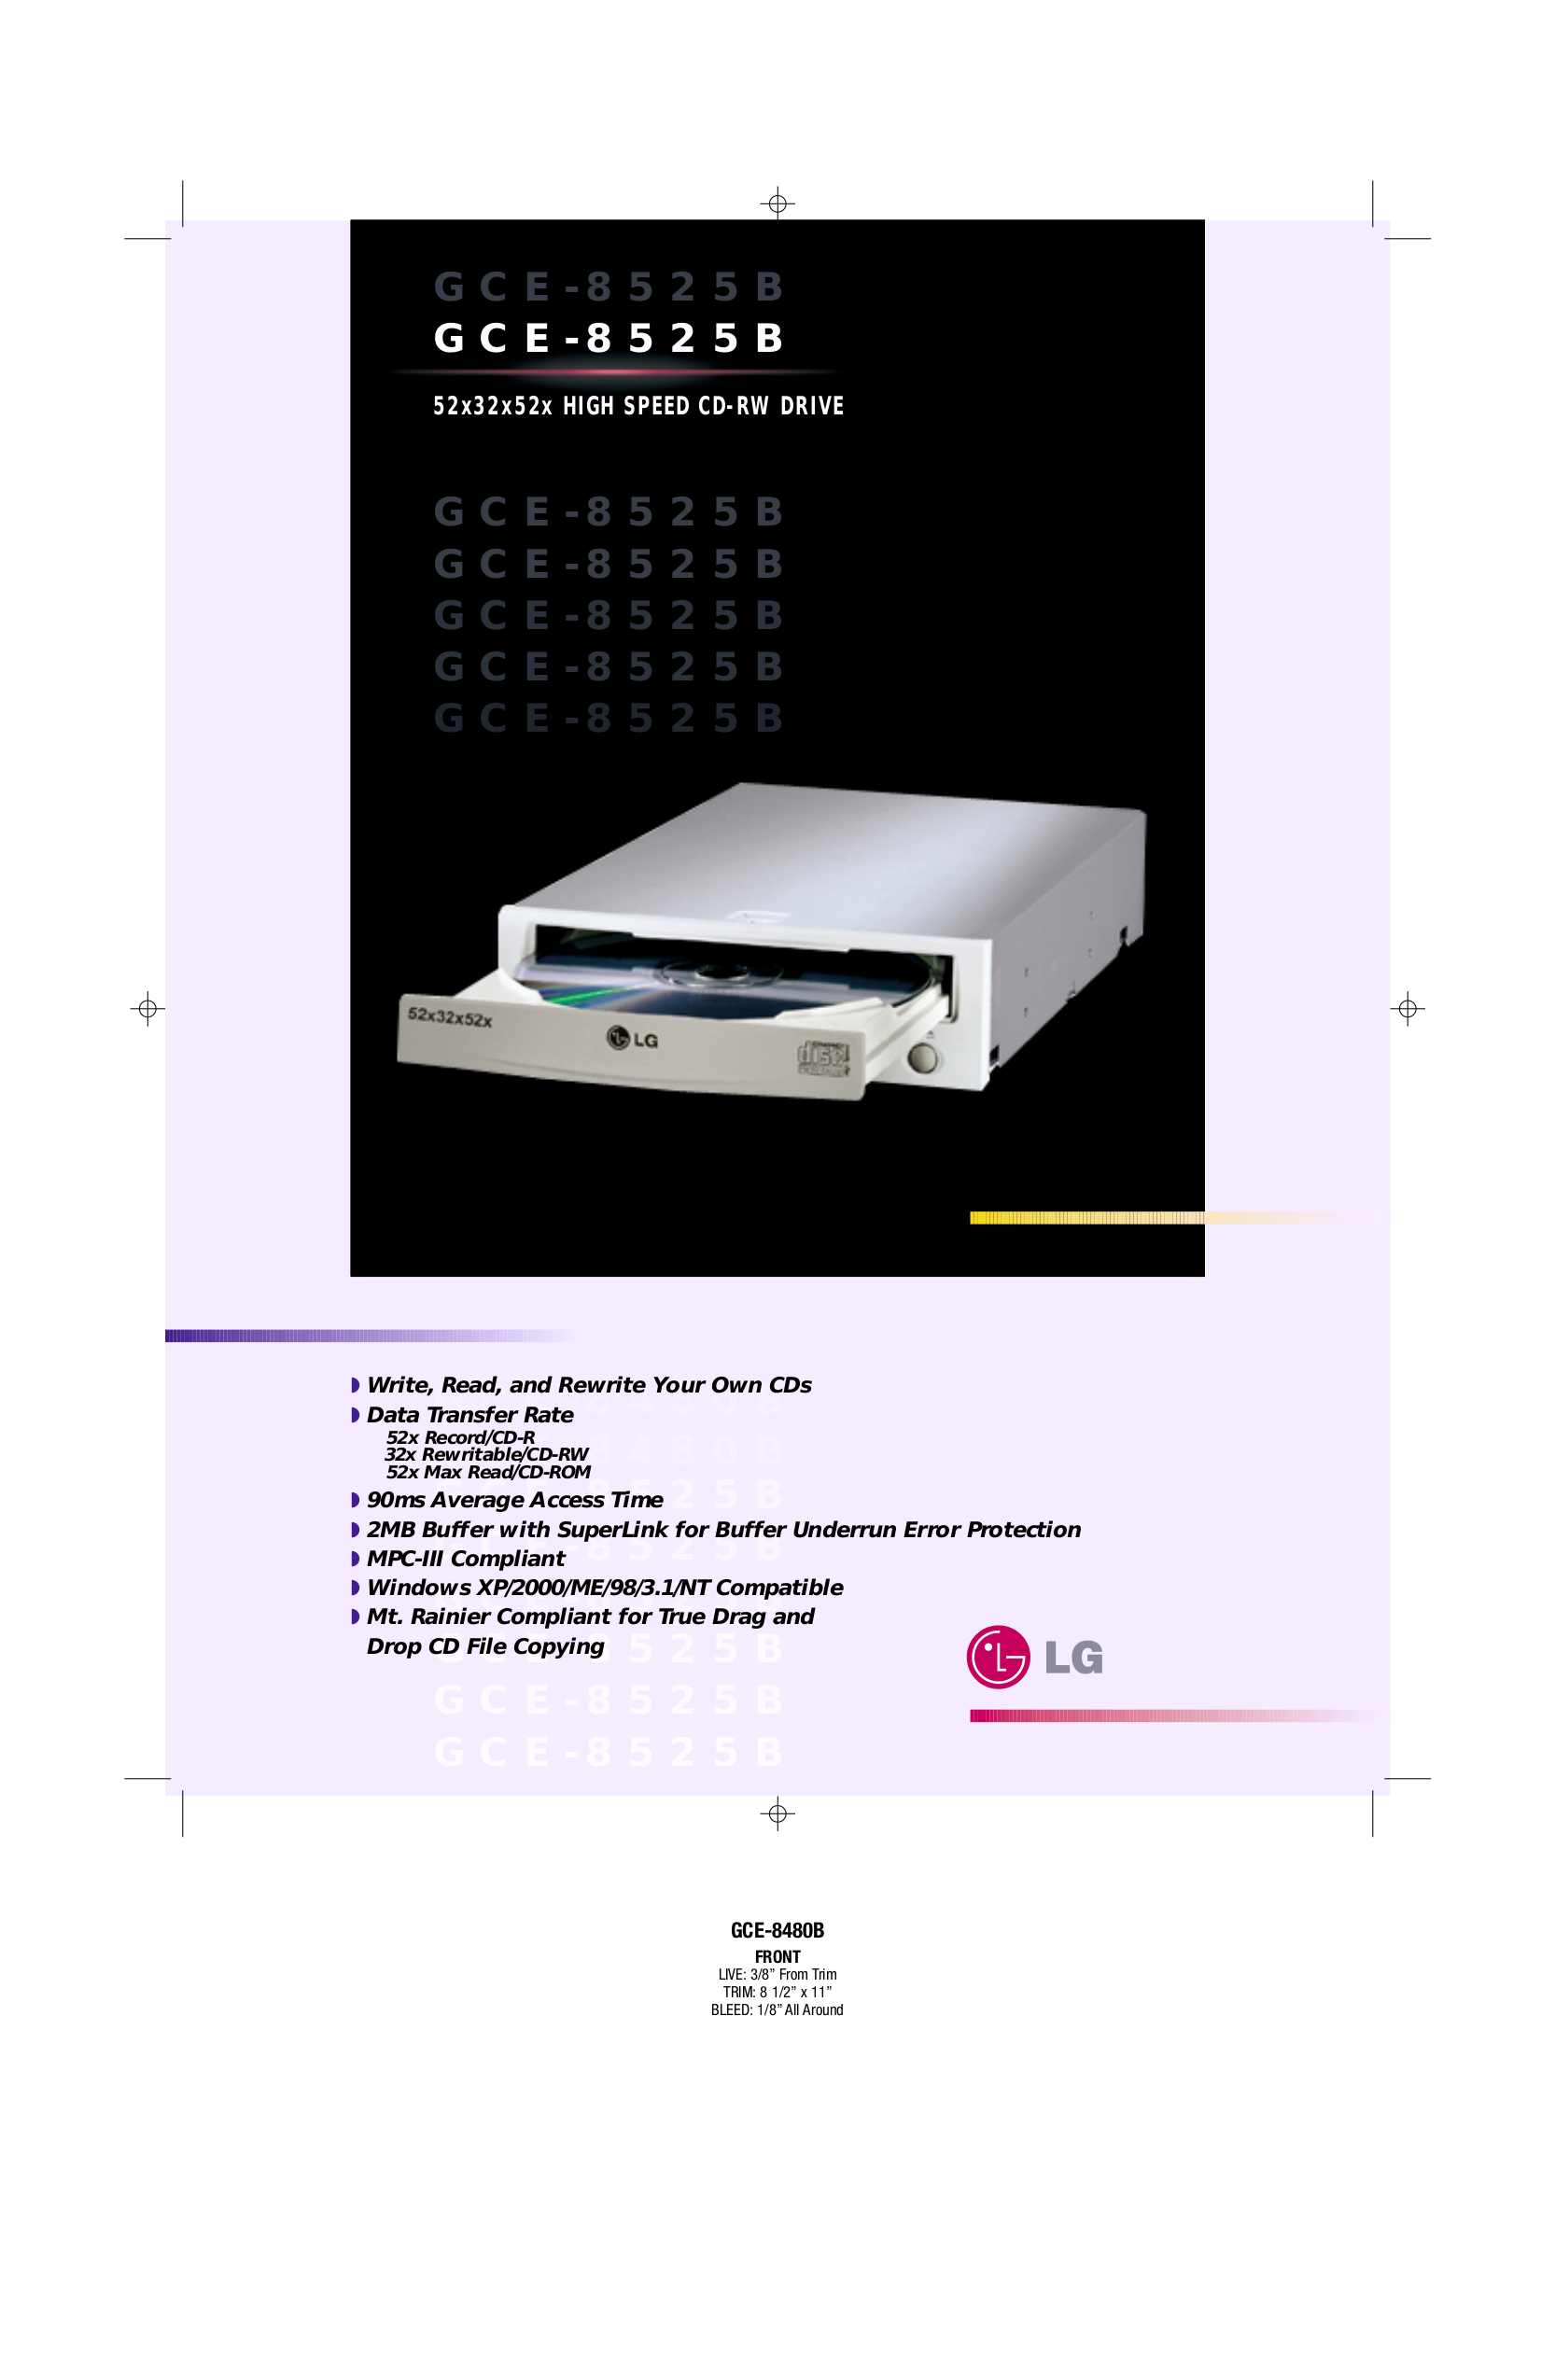 pdf for LG Other GCE-8525B CDR Drives manual